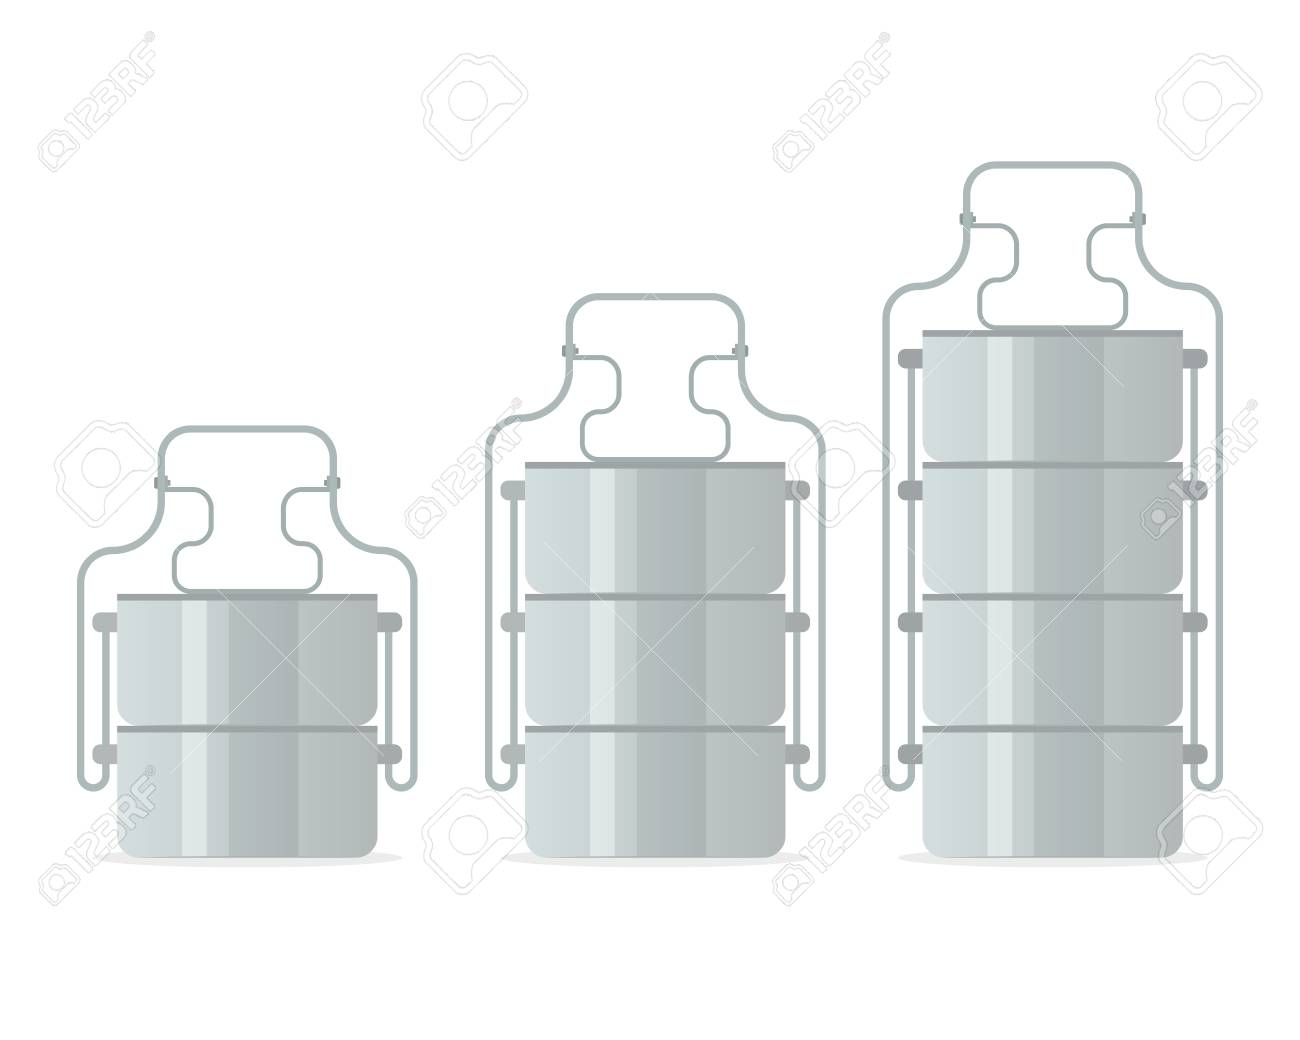 Tiffin food carrier icon set. Vector illustration isolated on white background. - 92684254